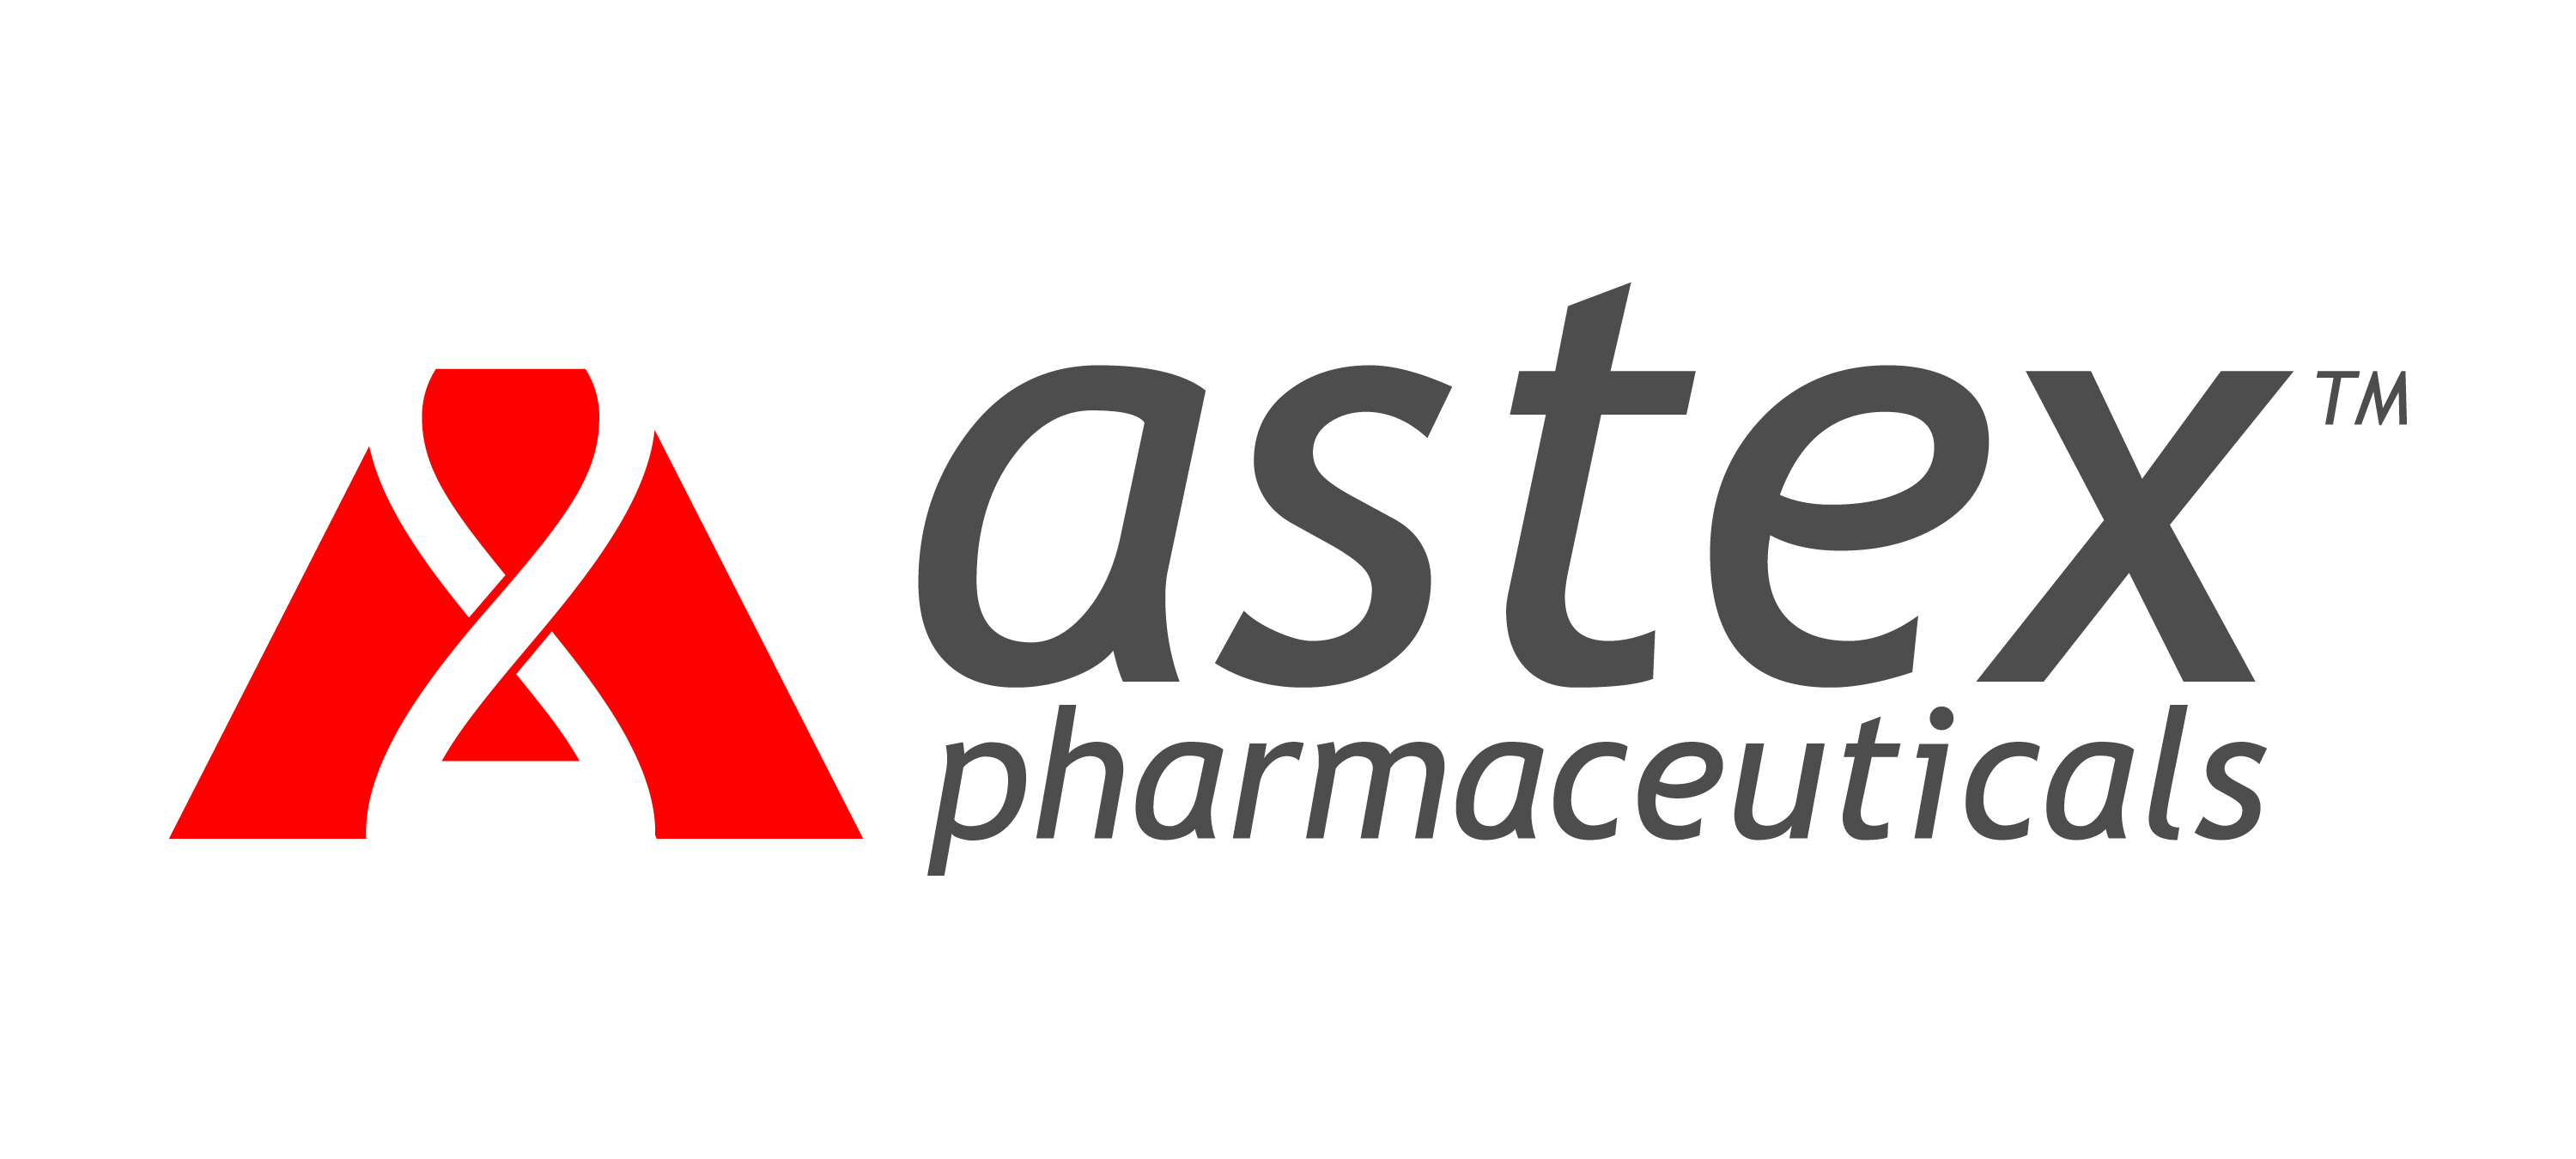 Astex Therapeutics